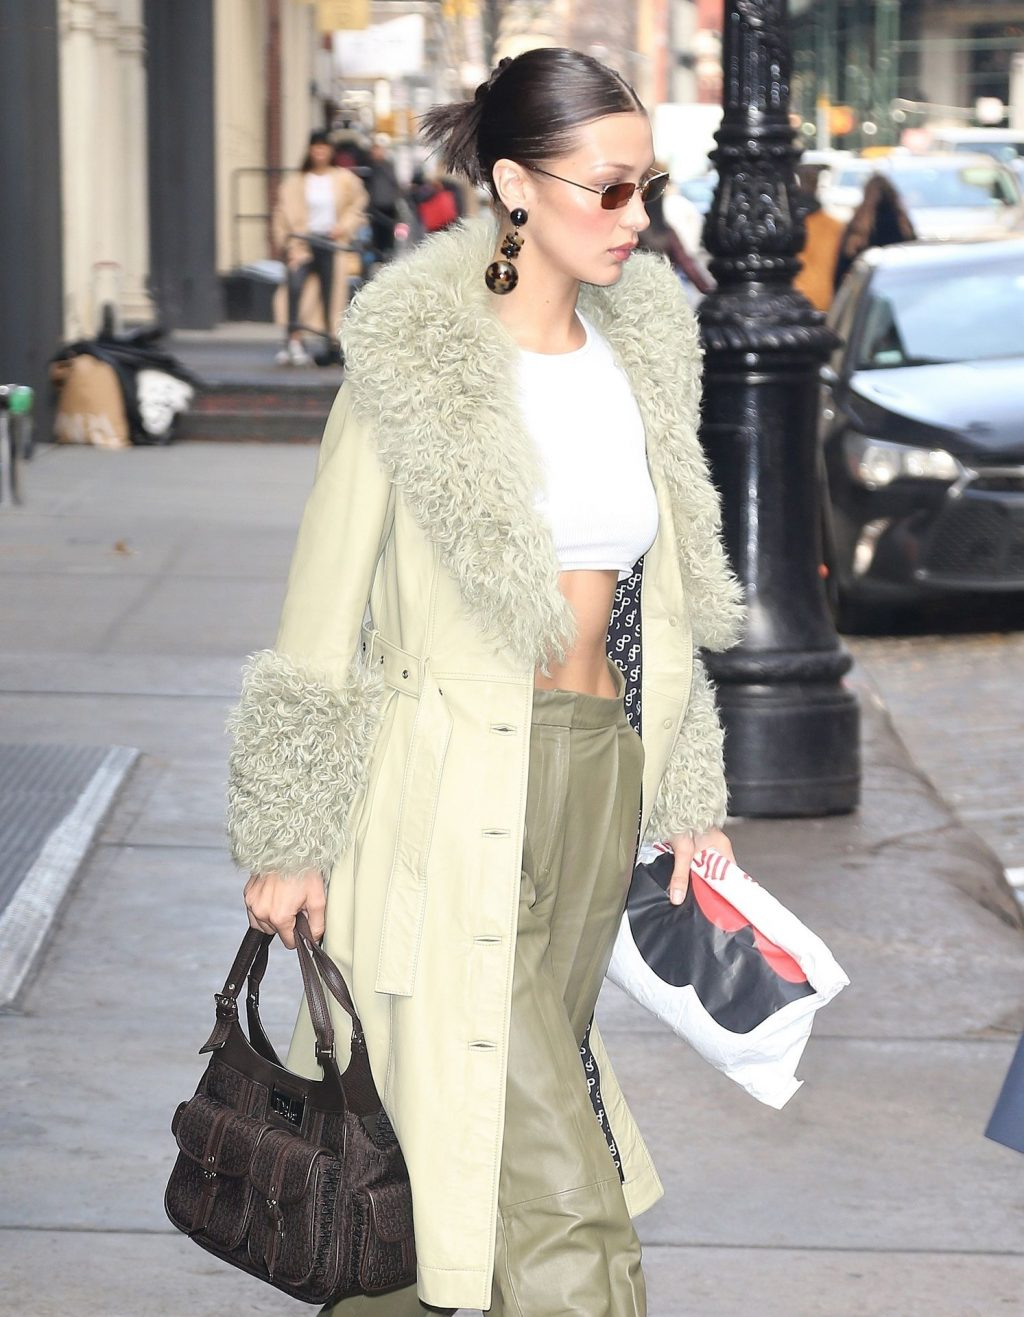 Bella Hadid See through The Fappening Blog 36 1024x1317 - Braless Bella Hadid Arrives at the Park Avenue Armory for the Marc Jacobs Fashion Show (59 Photos)